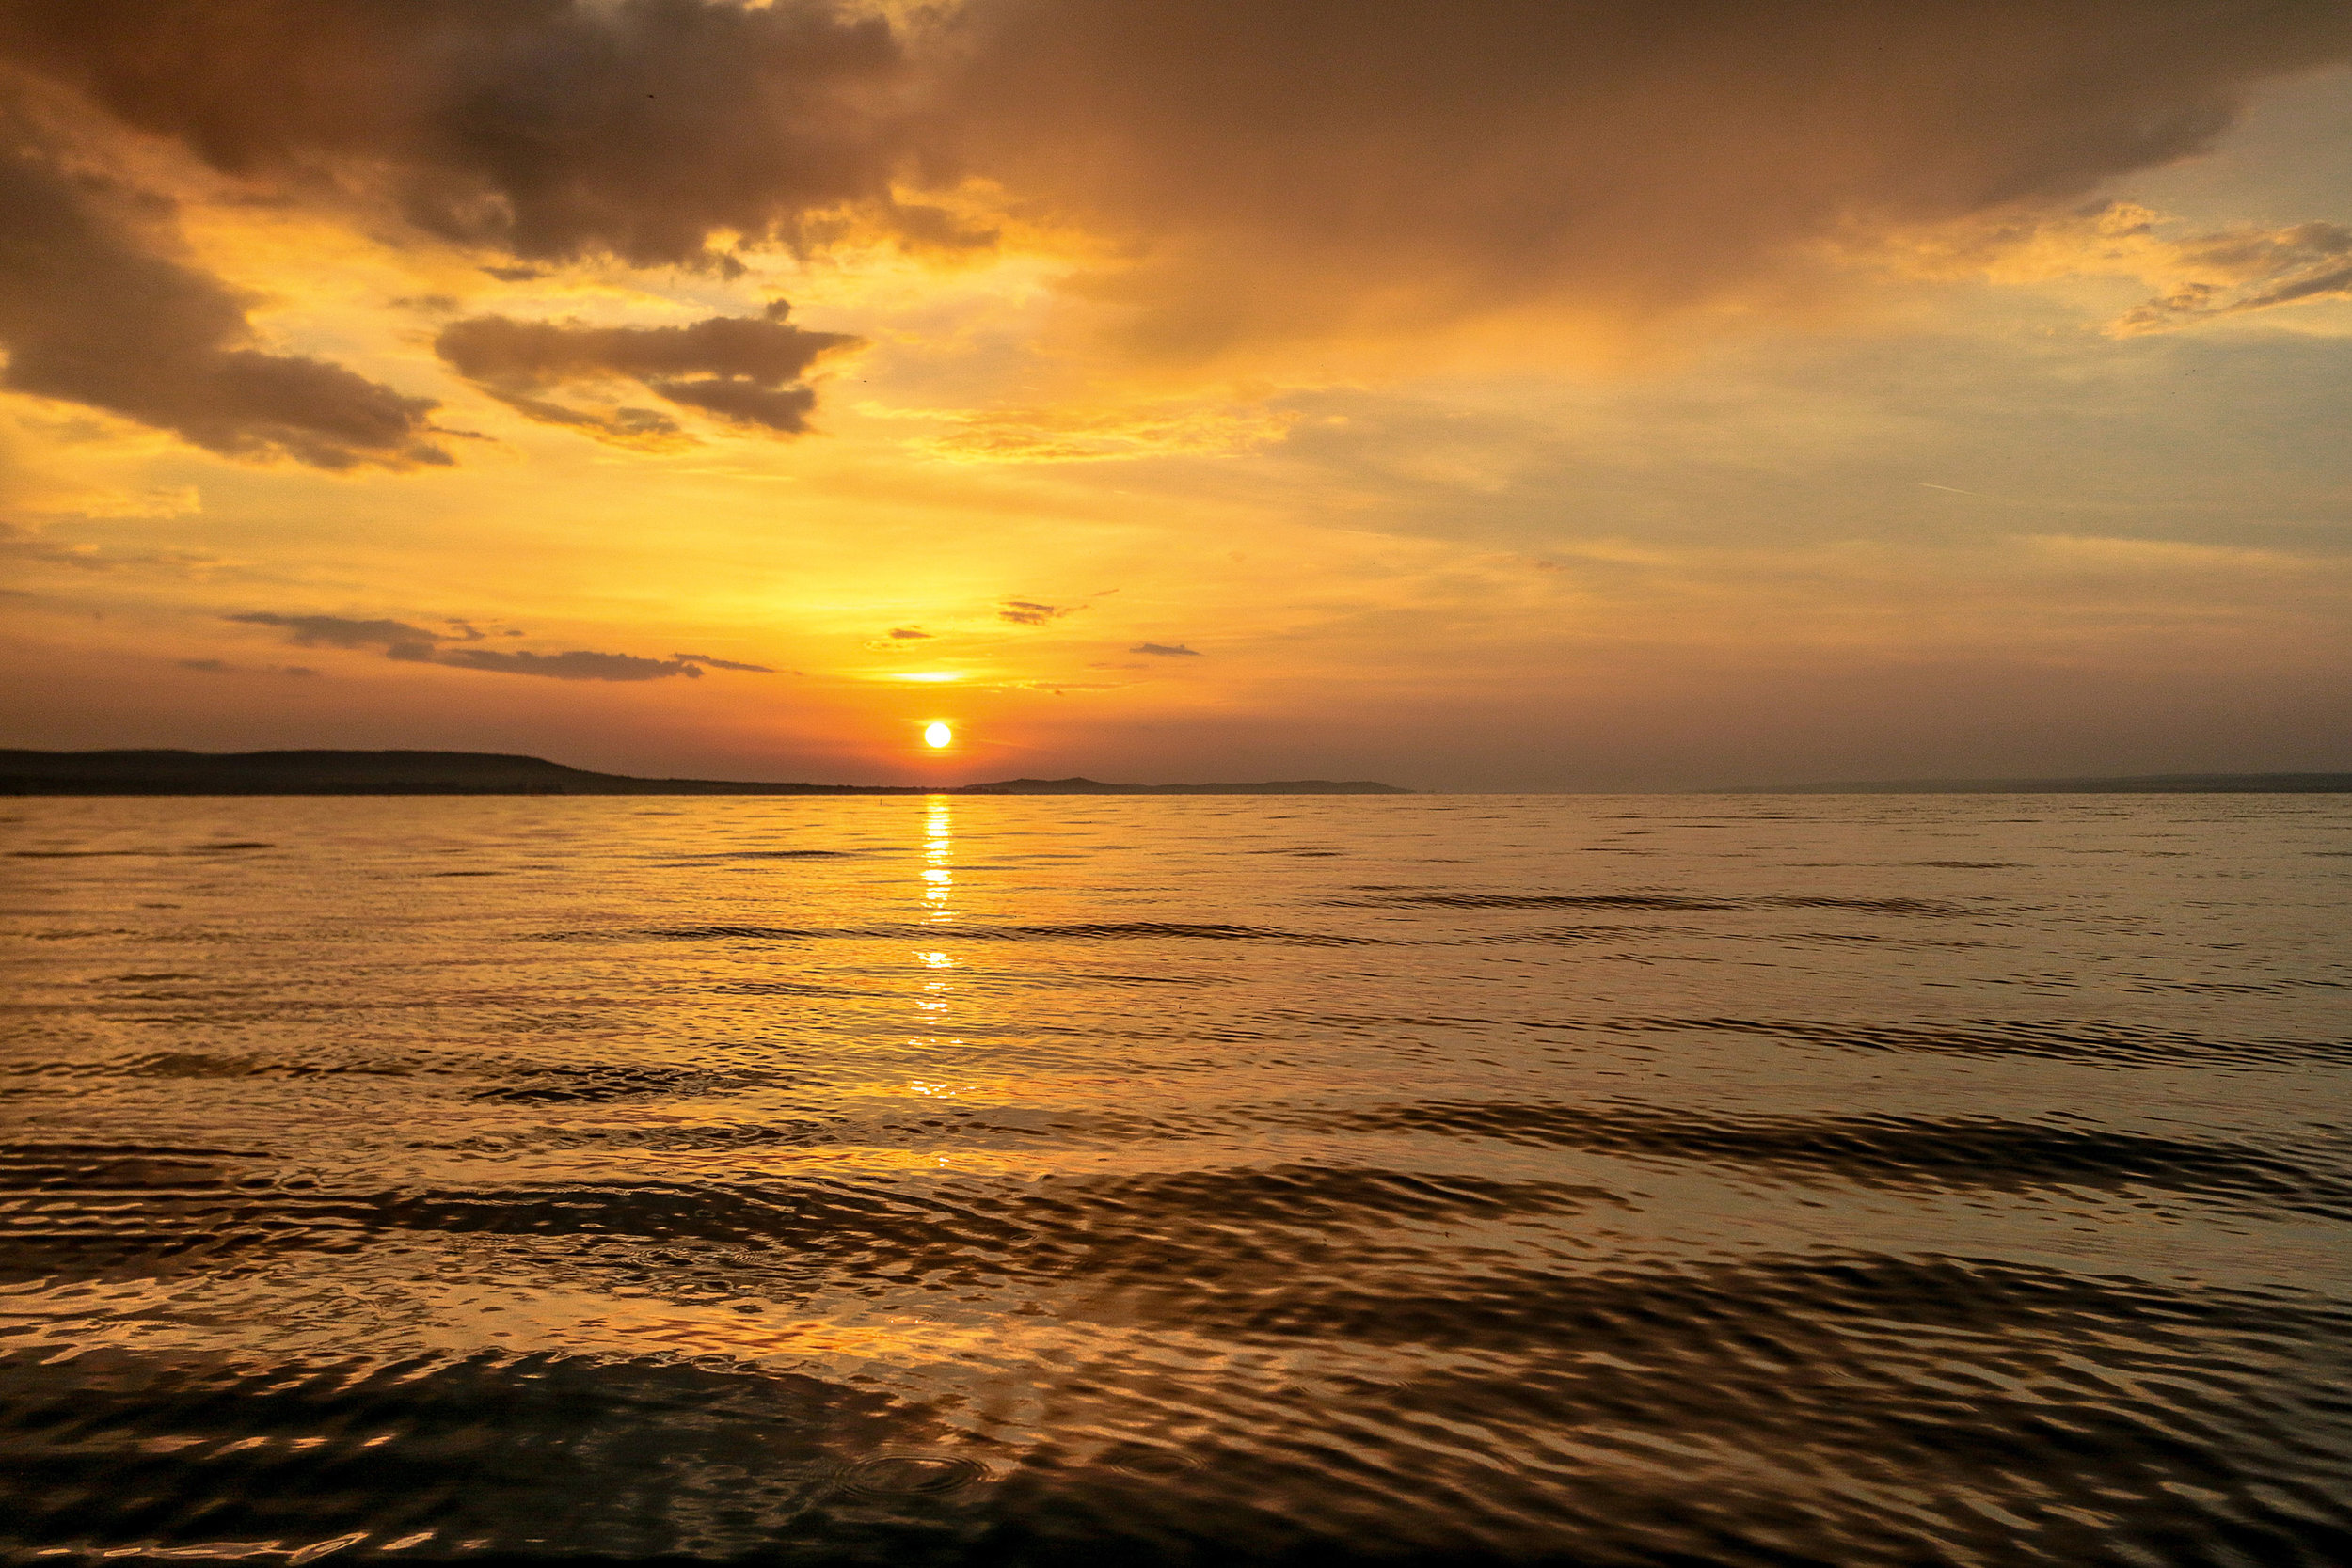 15-Balaton-left-a-lasting-impression-on-me-and-I'll-be-back-in-the-future!.jpg